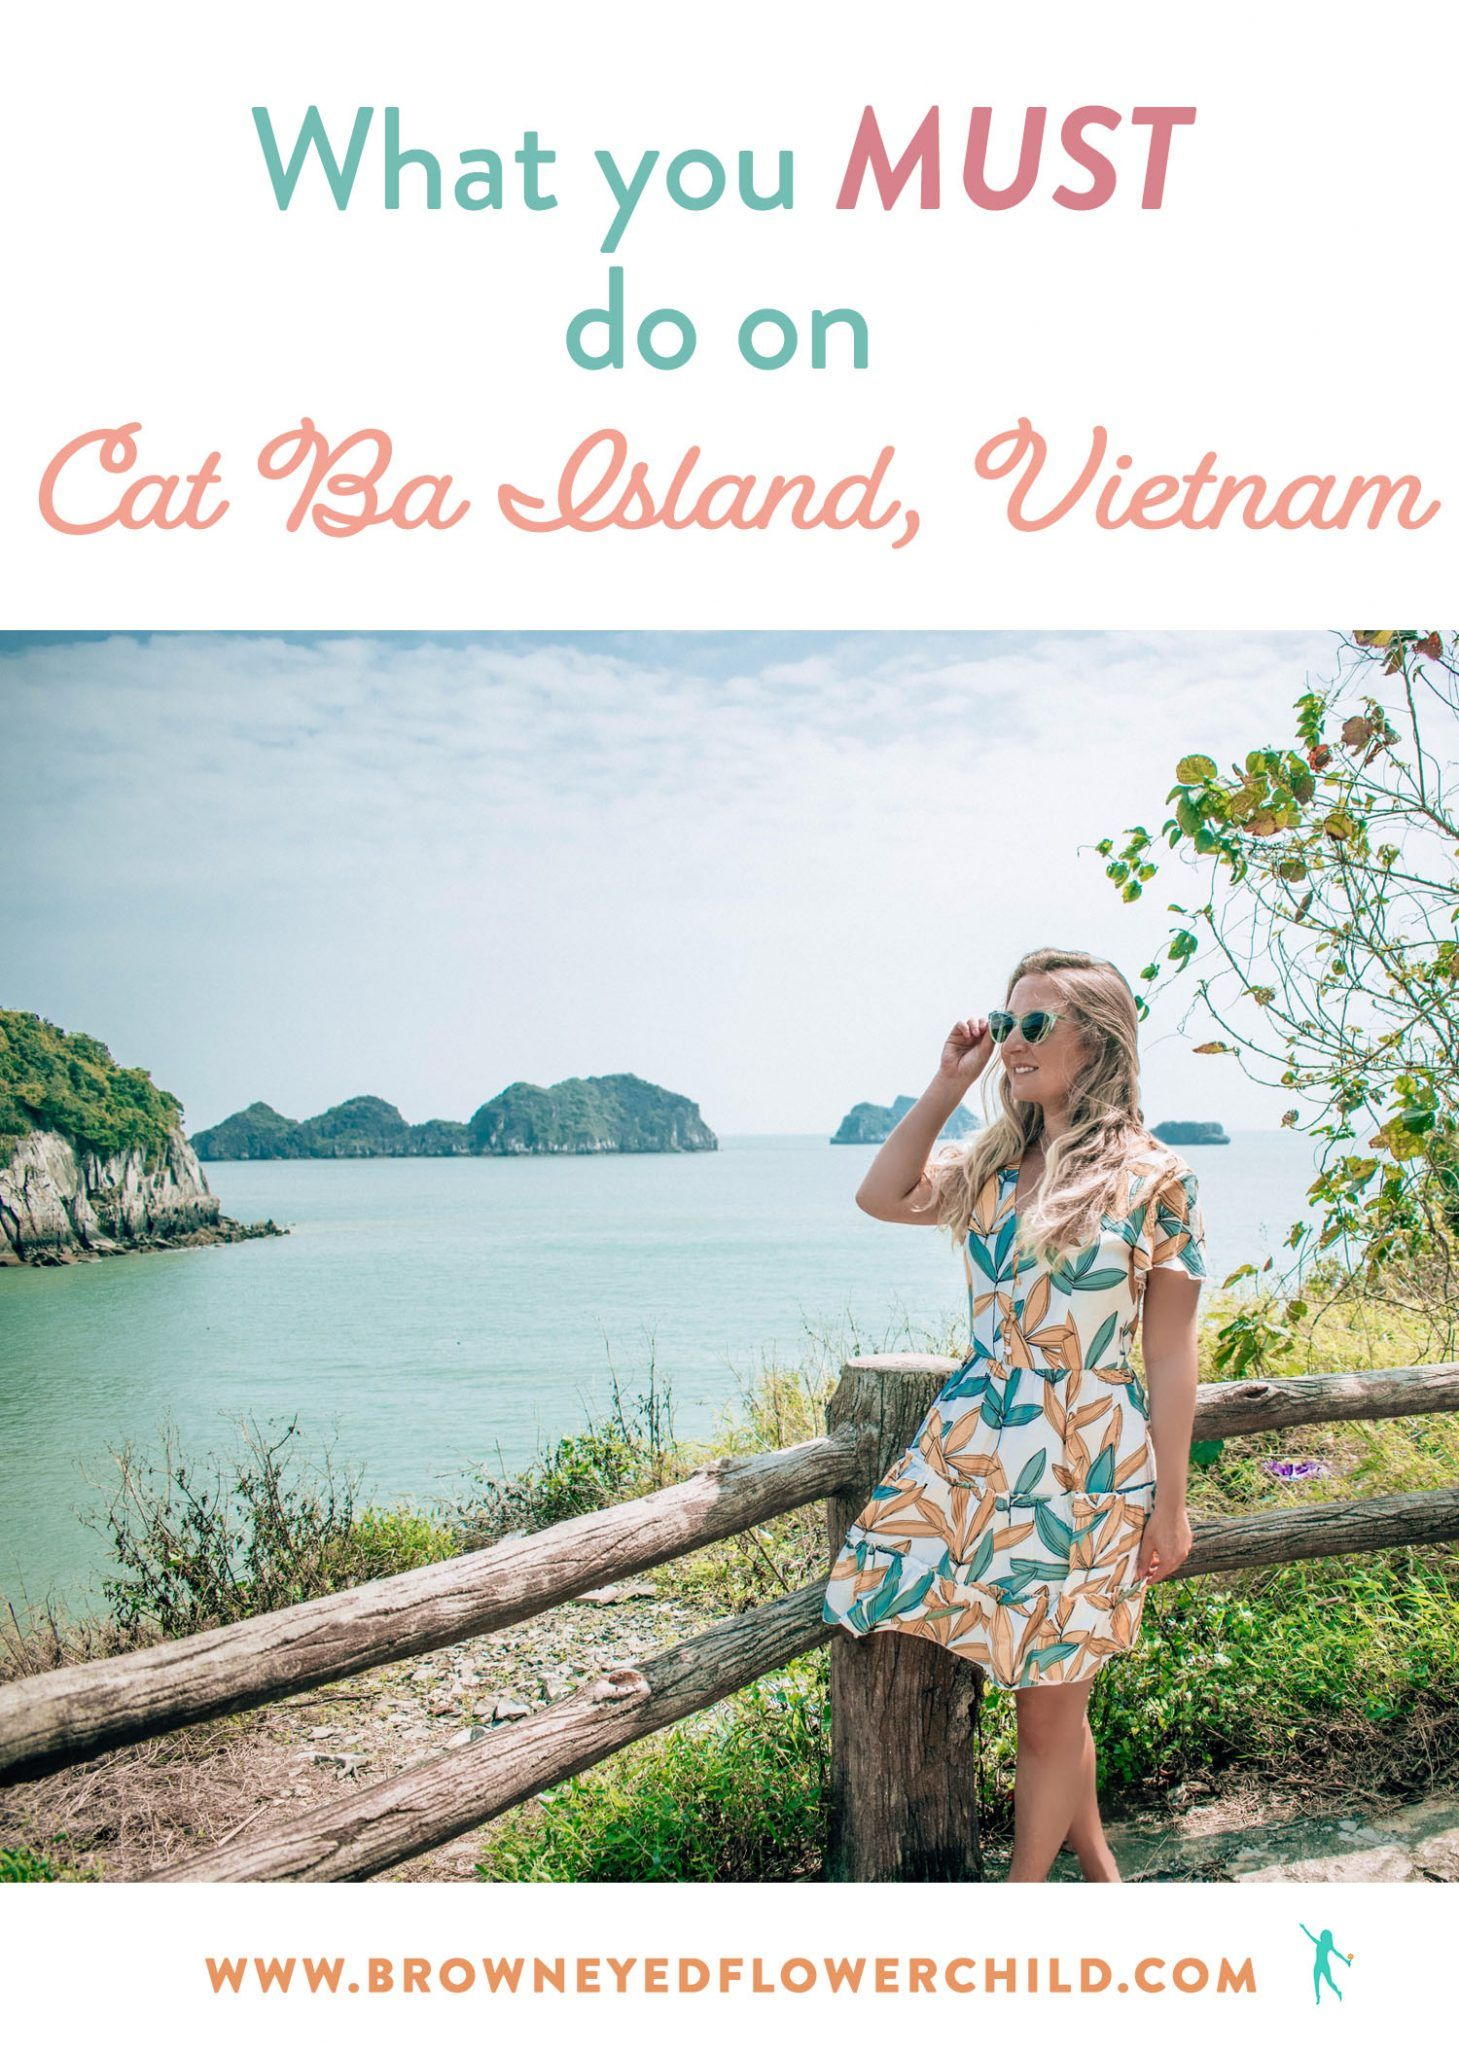 What you MUST do on Cat Ba Island in Vietnam. Discover how to relax and also have fun! #CatBaIsland #CatBaIslandVietnam #VietnamTrip #SoutheastAsiaTrip #VietnamIsland